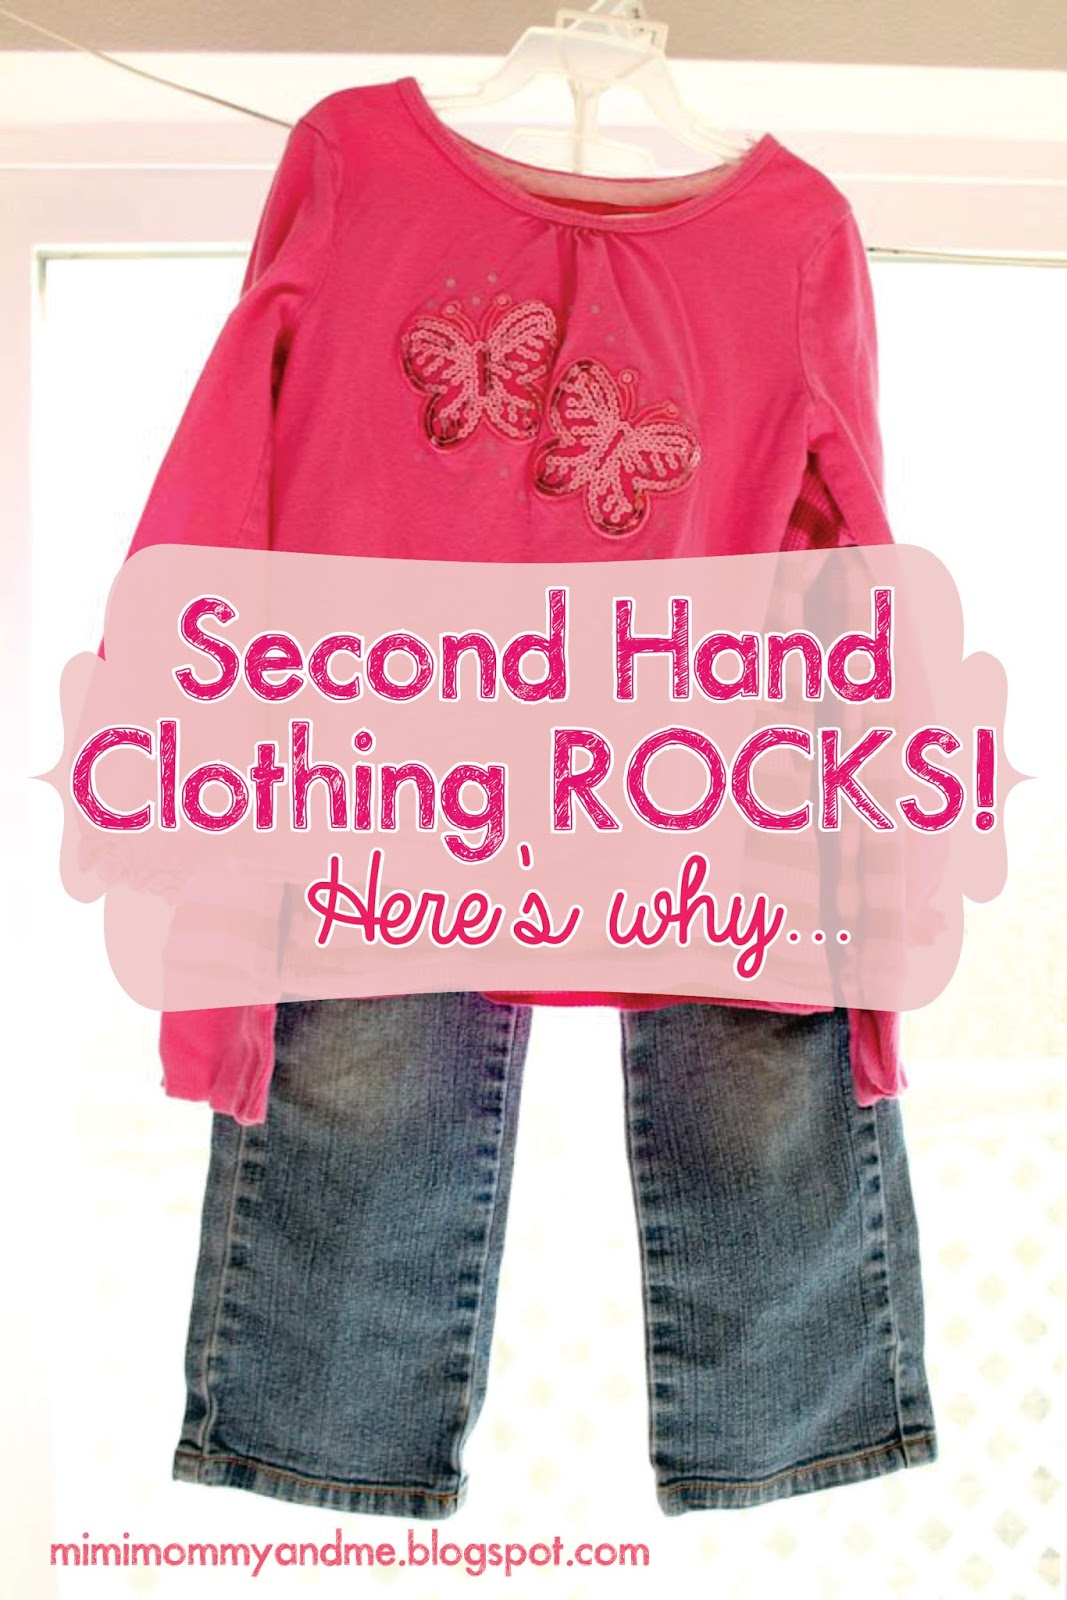 http://mimimommyandme.blogspot.com/2014/05/second-hand-clothing-rocks-heres-why.html